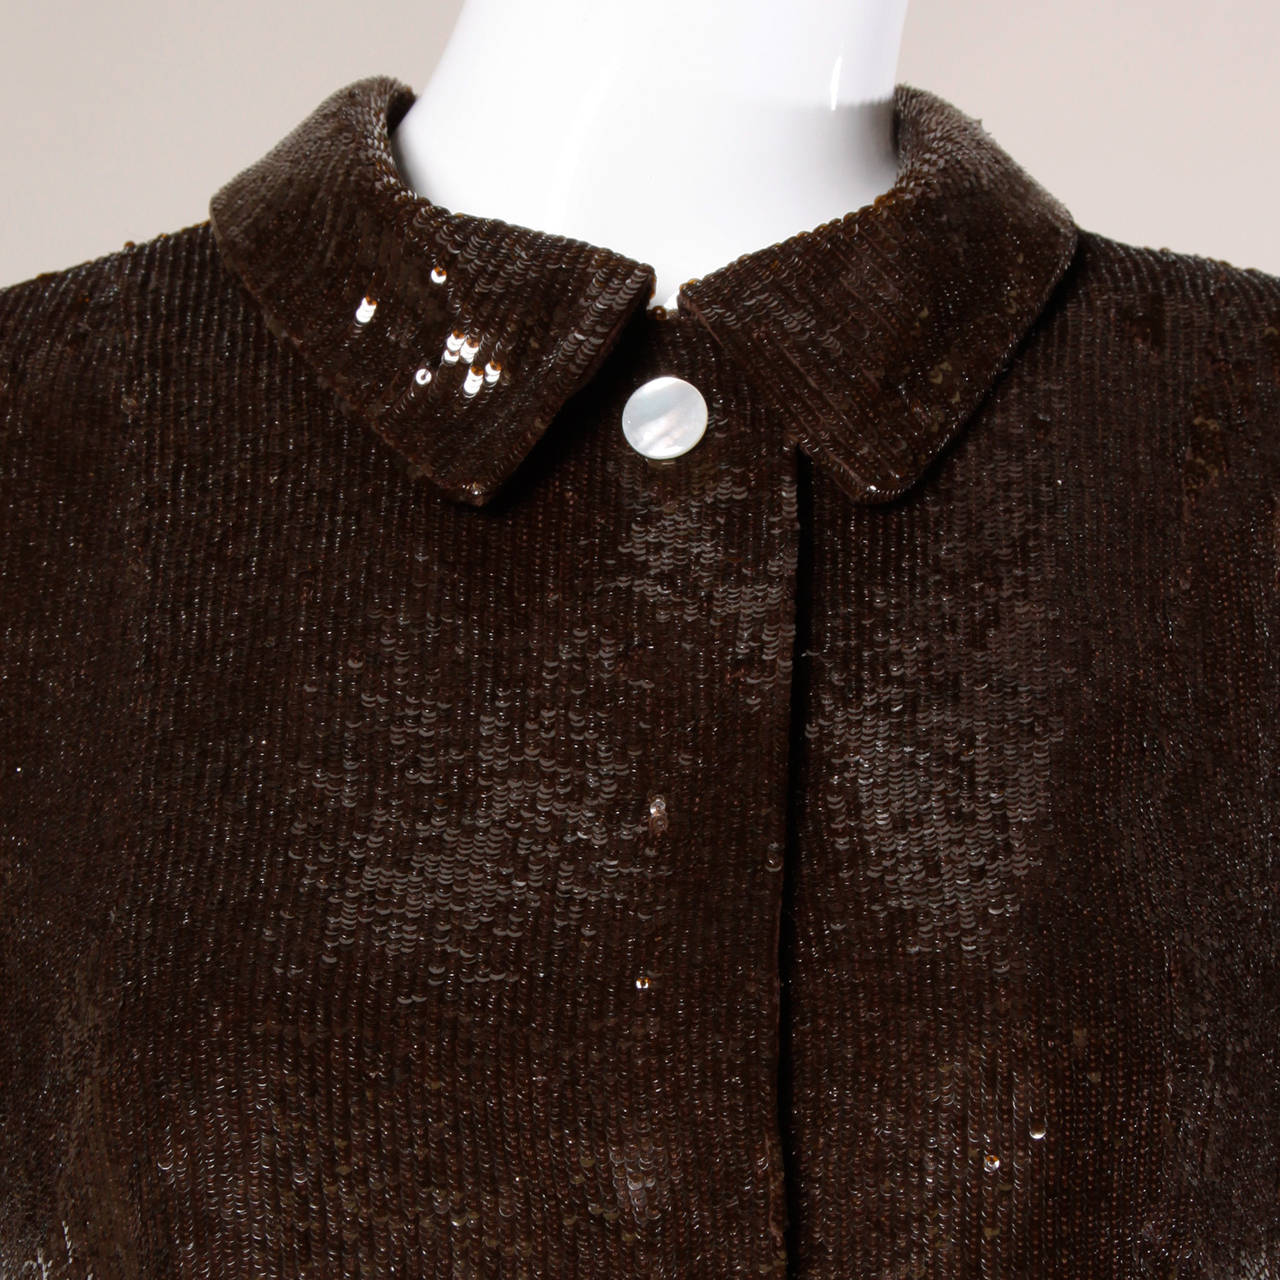 Chocolate brown silk short sleeved top or jacket encrusted in tiny sequins by Oscar de la Renta. Satin lining and two decorative pearl buttons.